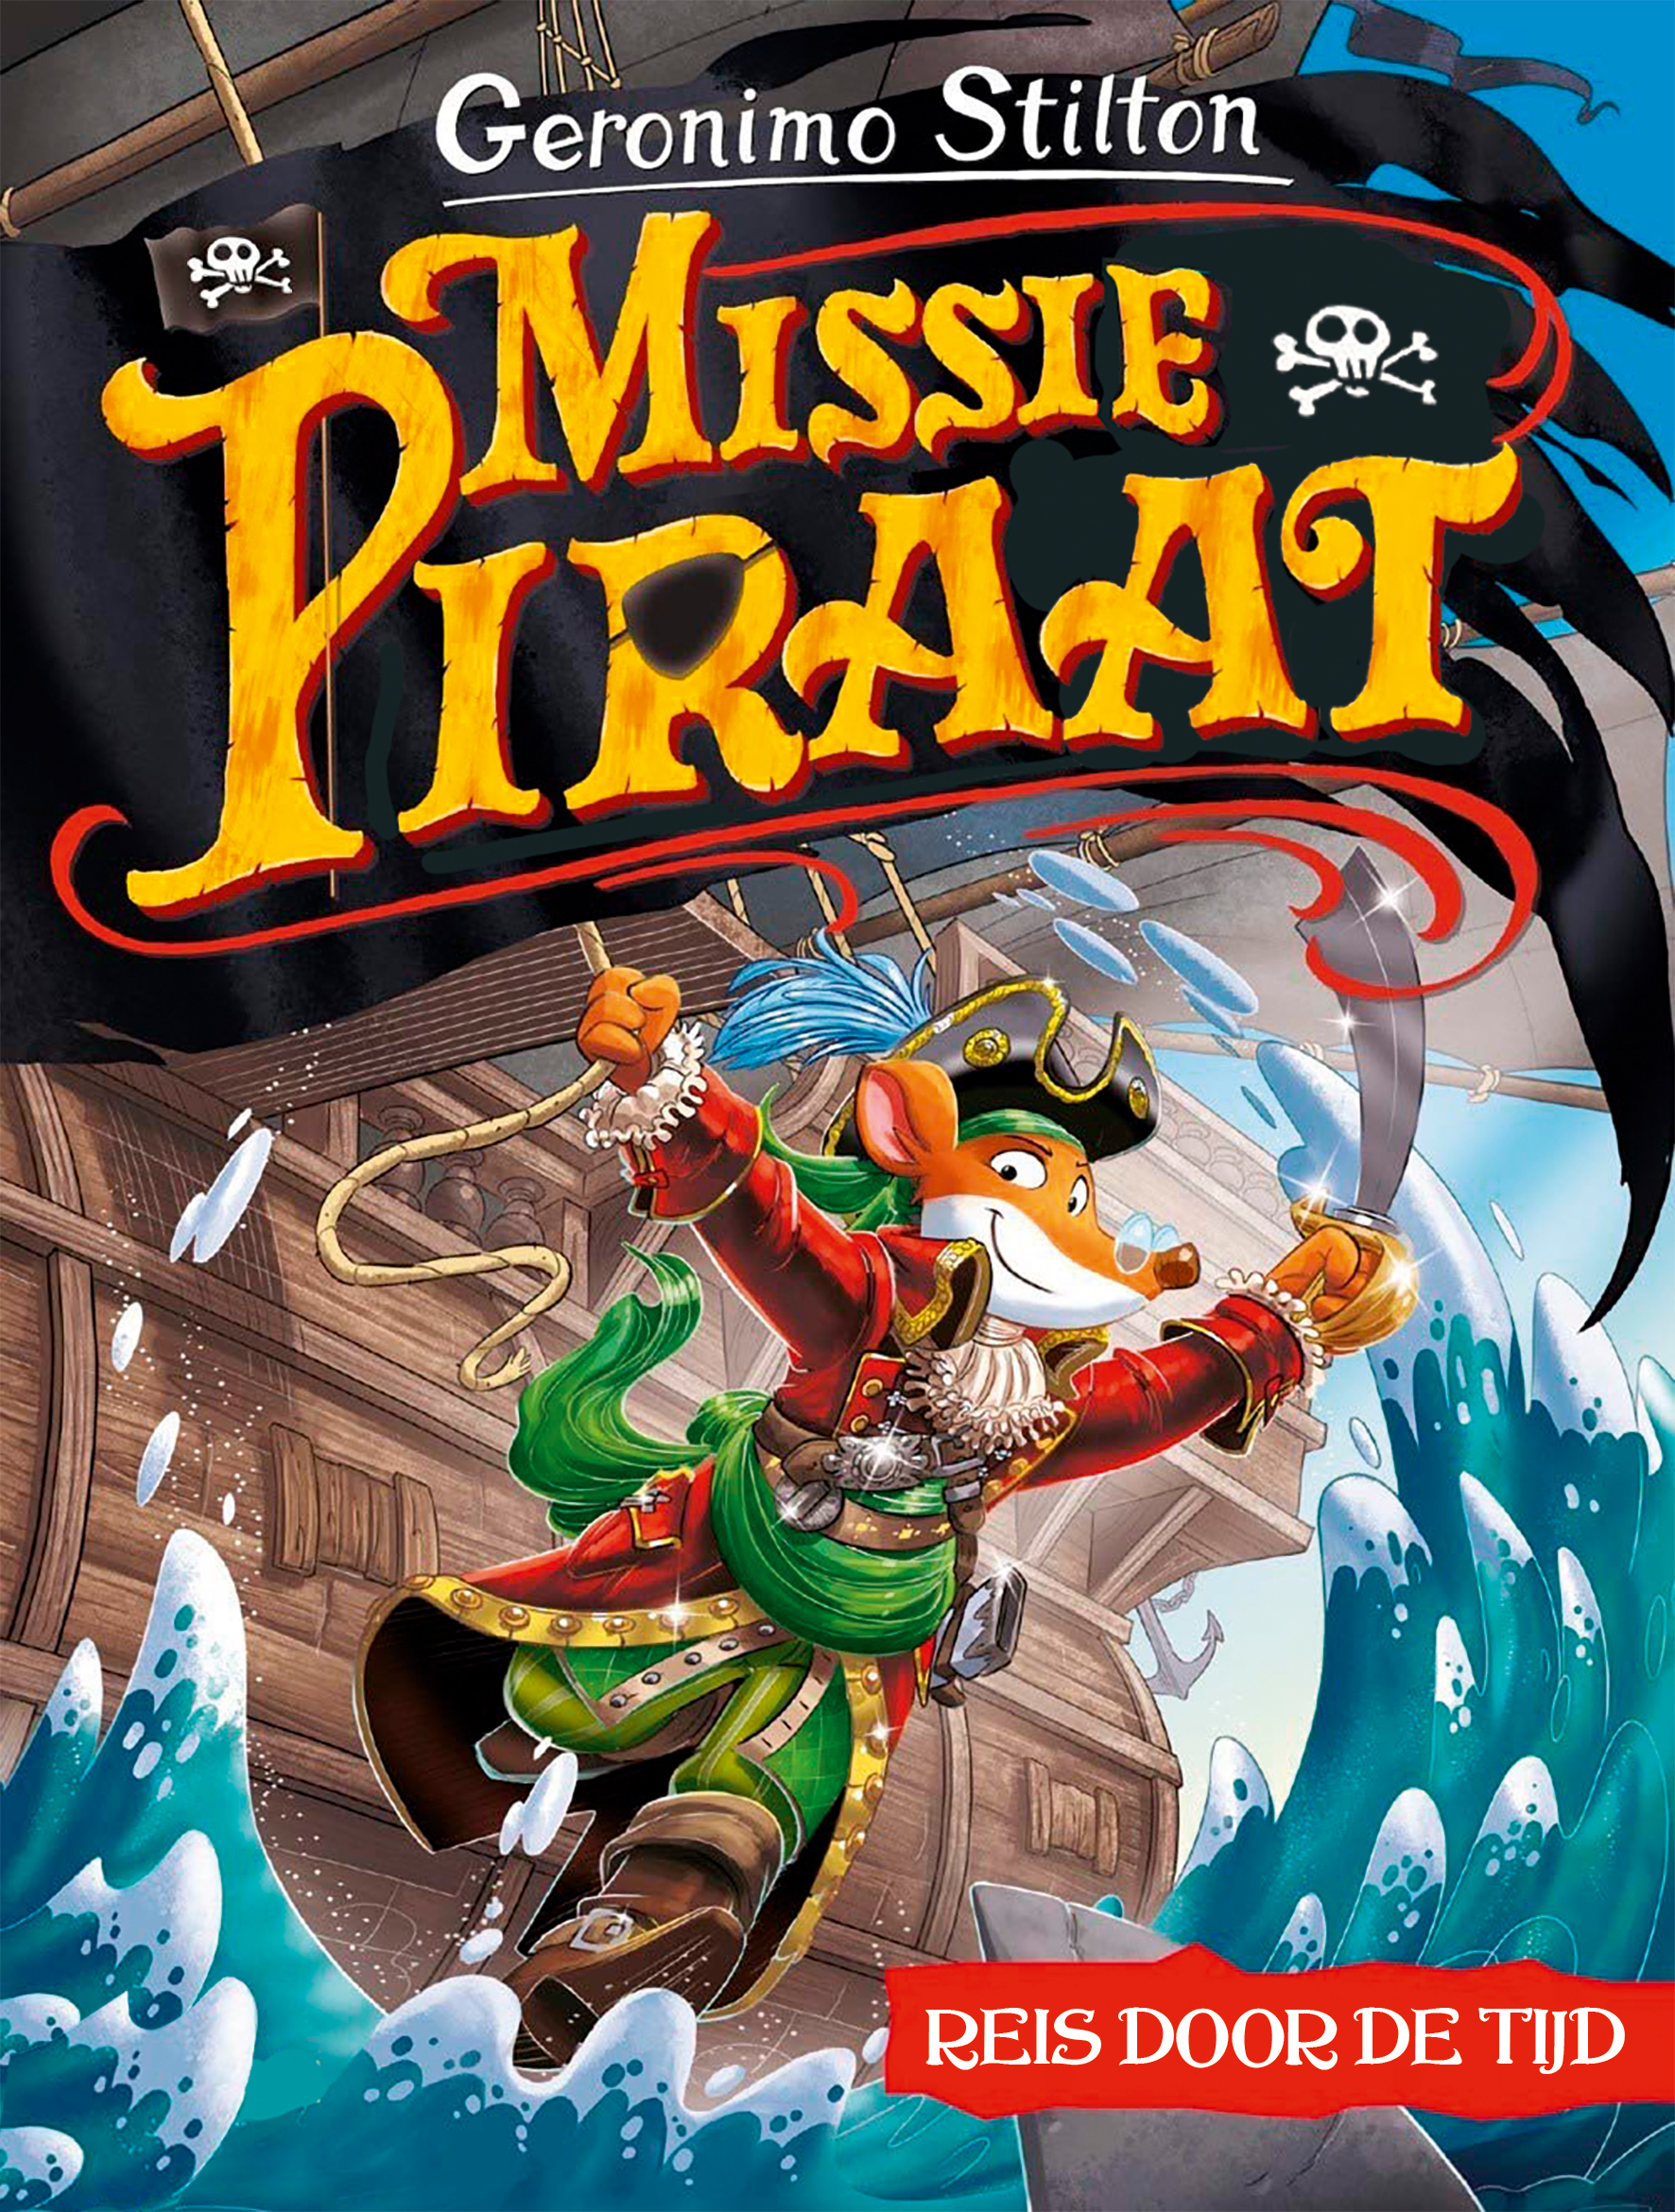 Geronimo Stilton Missie piraat